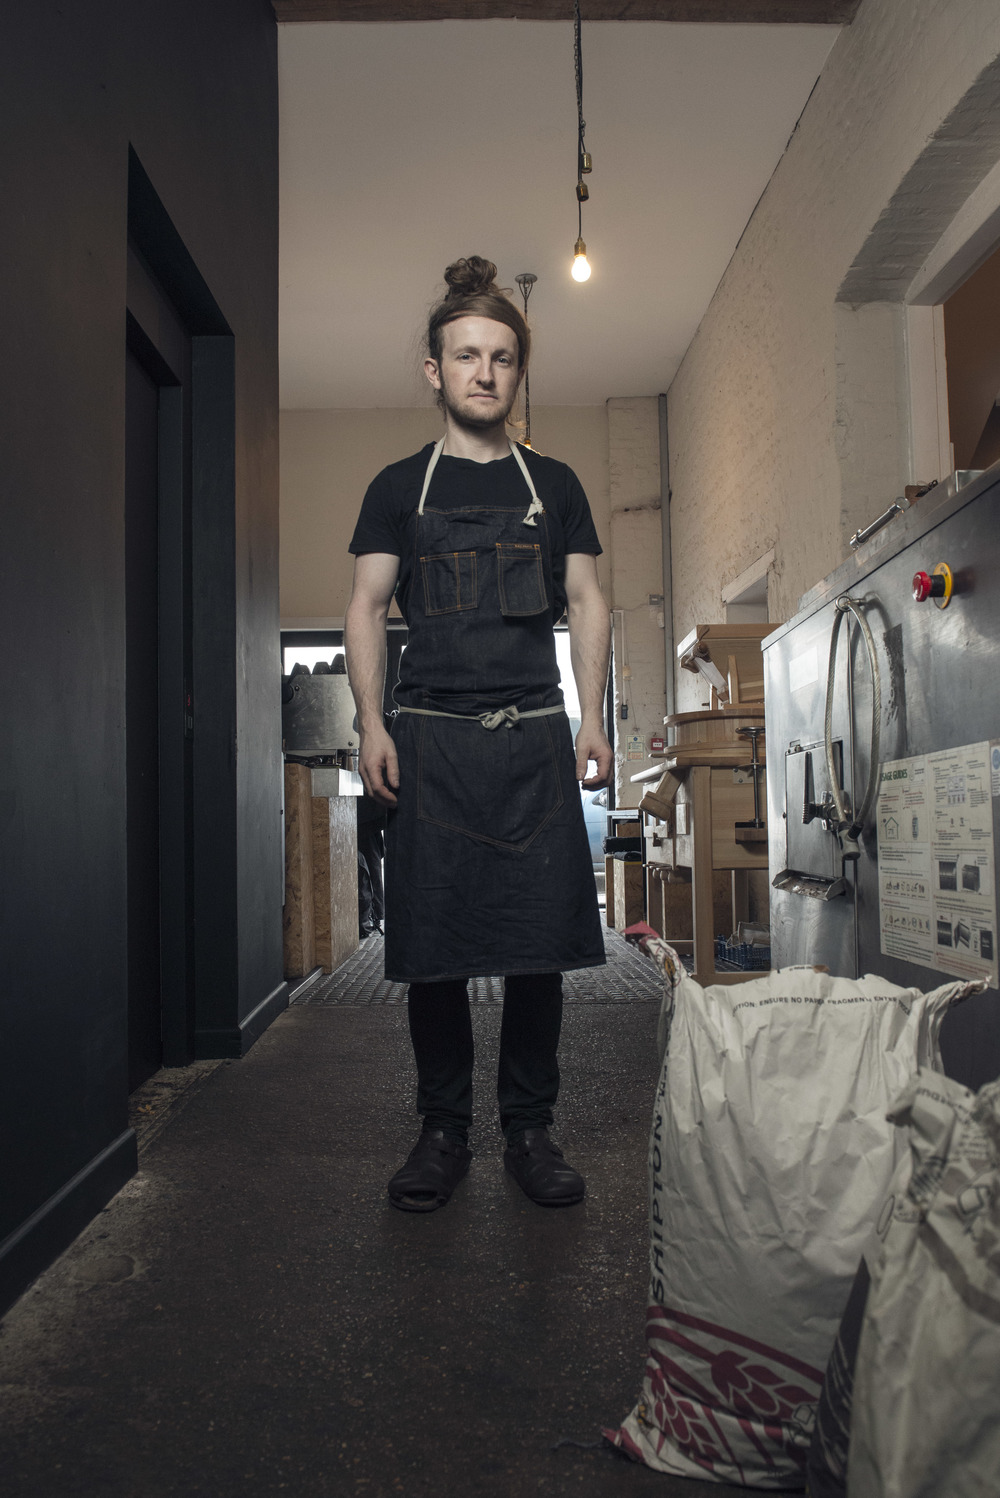 brighton_chef_portrait